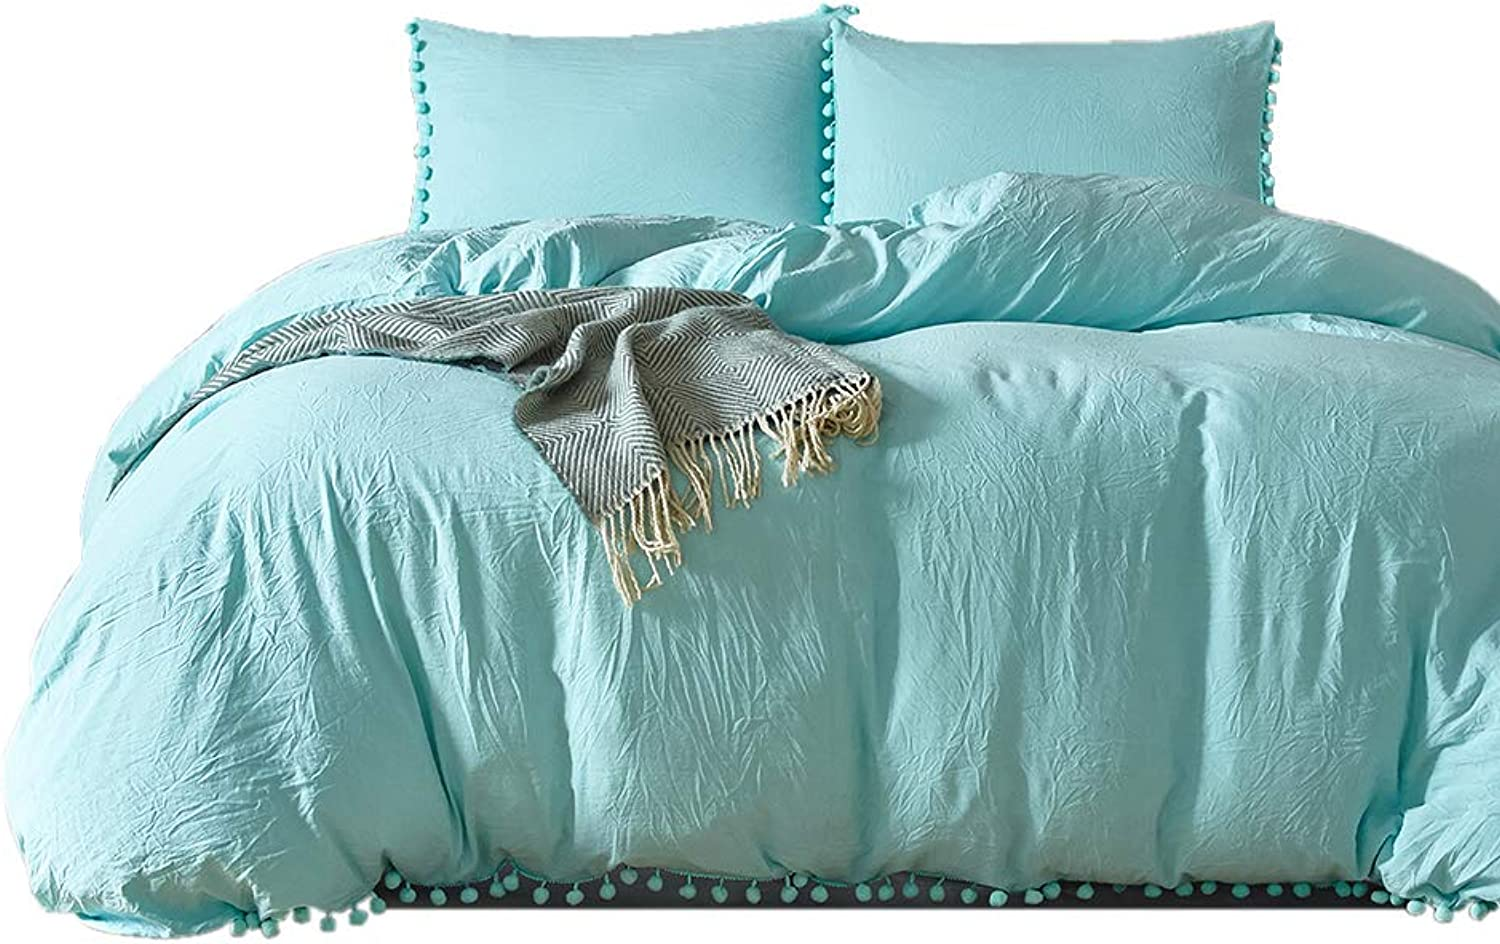 Duvet Cover Set King with Hidden Zipper Closure,Solid color 3 Pieces Soft Microfiber Bedding Set Includes 1 Comforter Cover and 2 Pillow Shams (King, Turquoise)